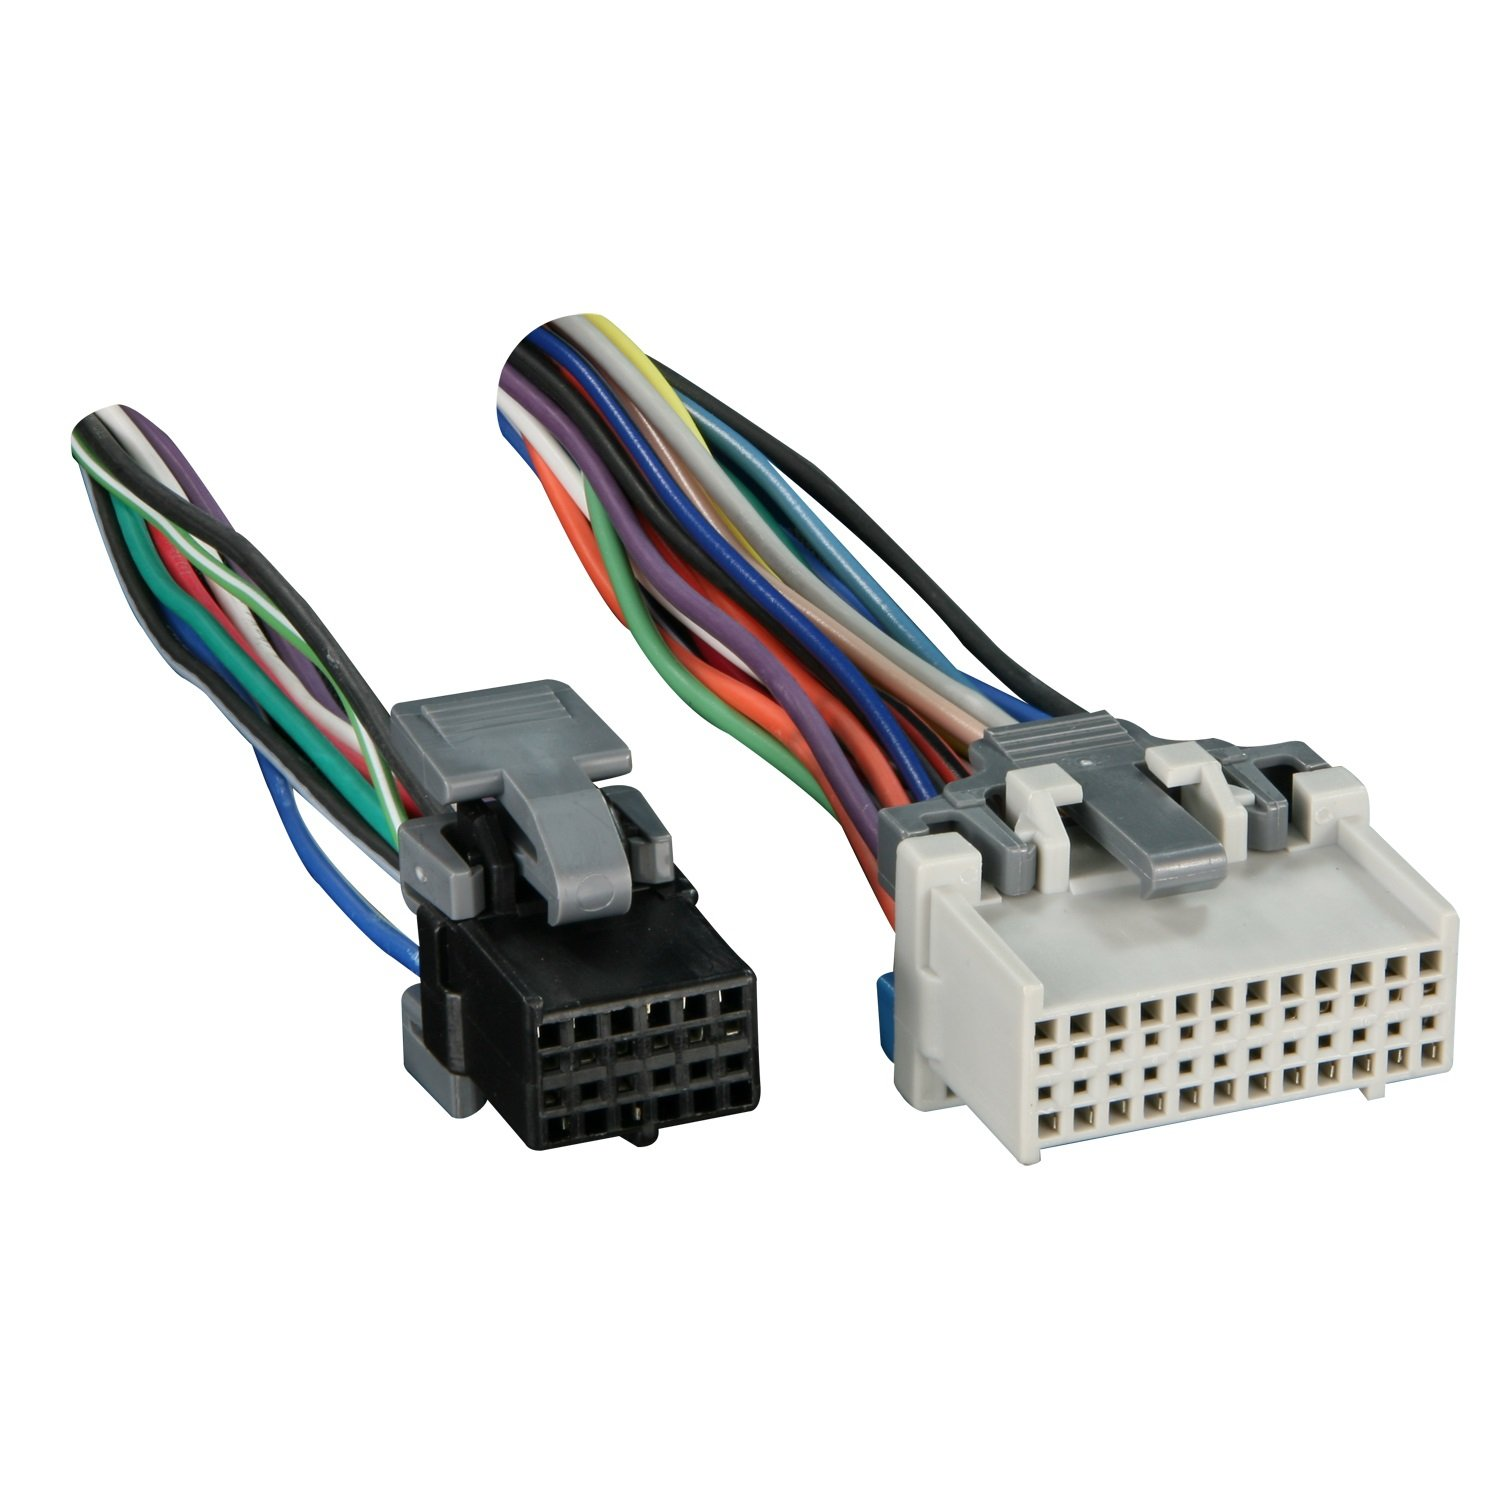 711log4bdML._SL1500_ amazon com metra turbowires 71 2003 1 wiring harness car electronics  at bakdesigns.co